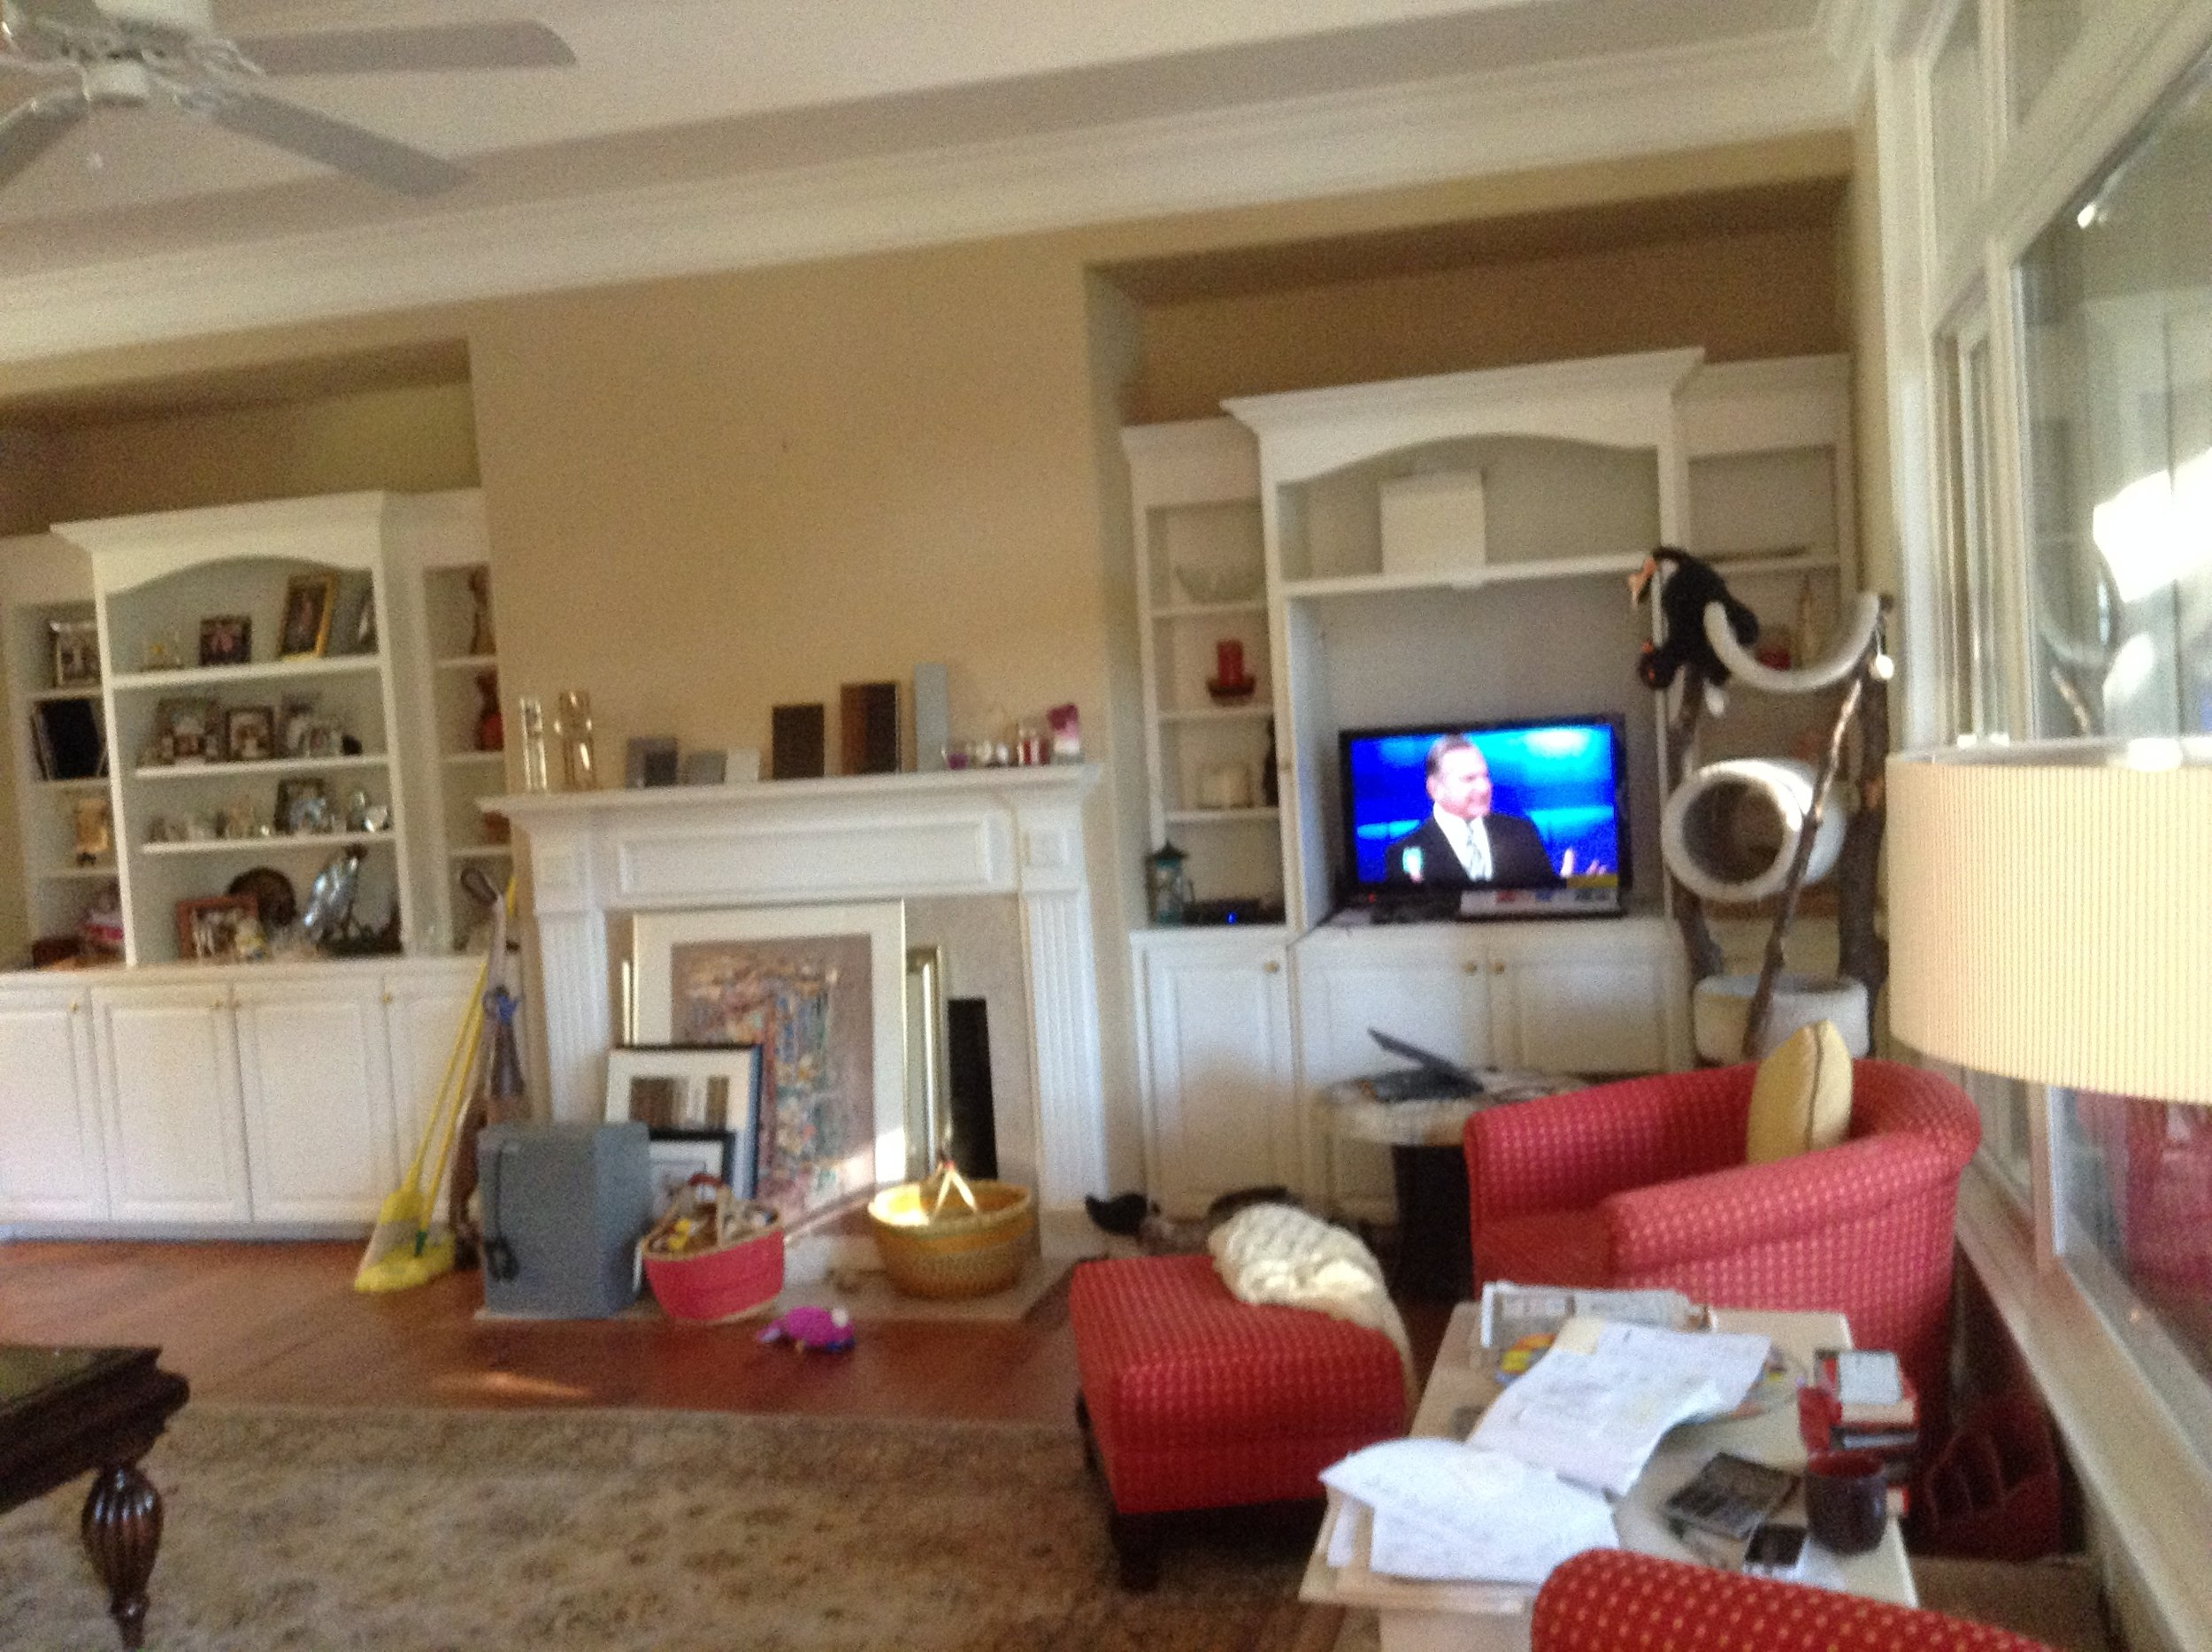 BEFORE: A traditional living space with white bookshelves framing the fireplace becomes...